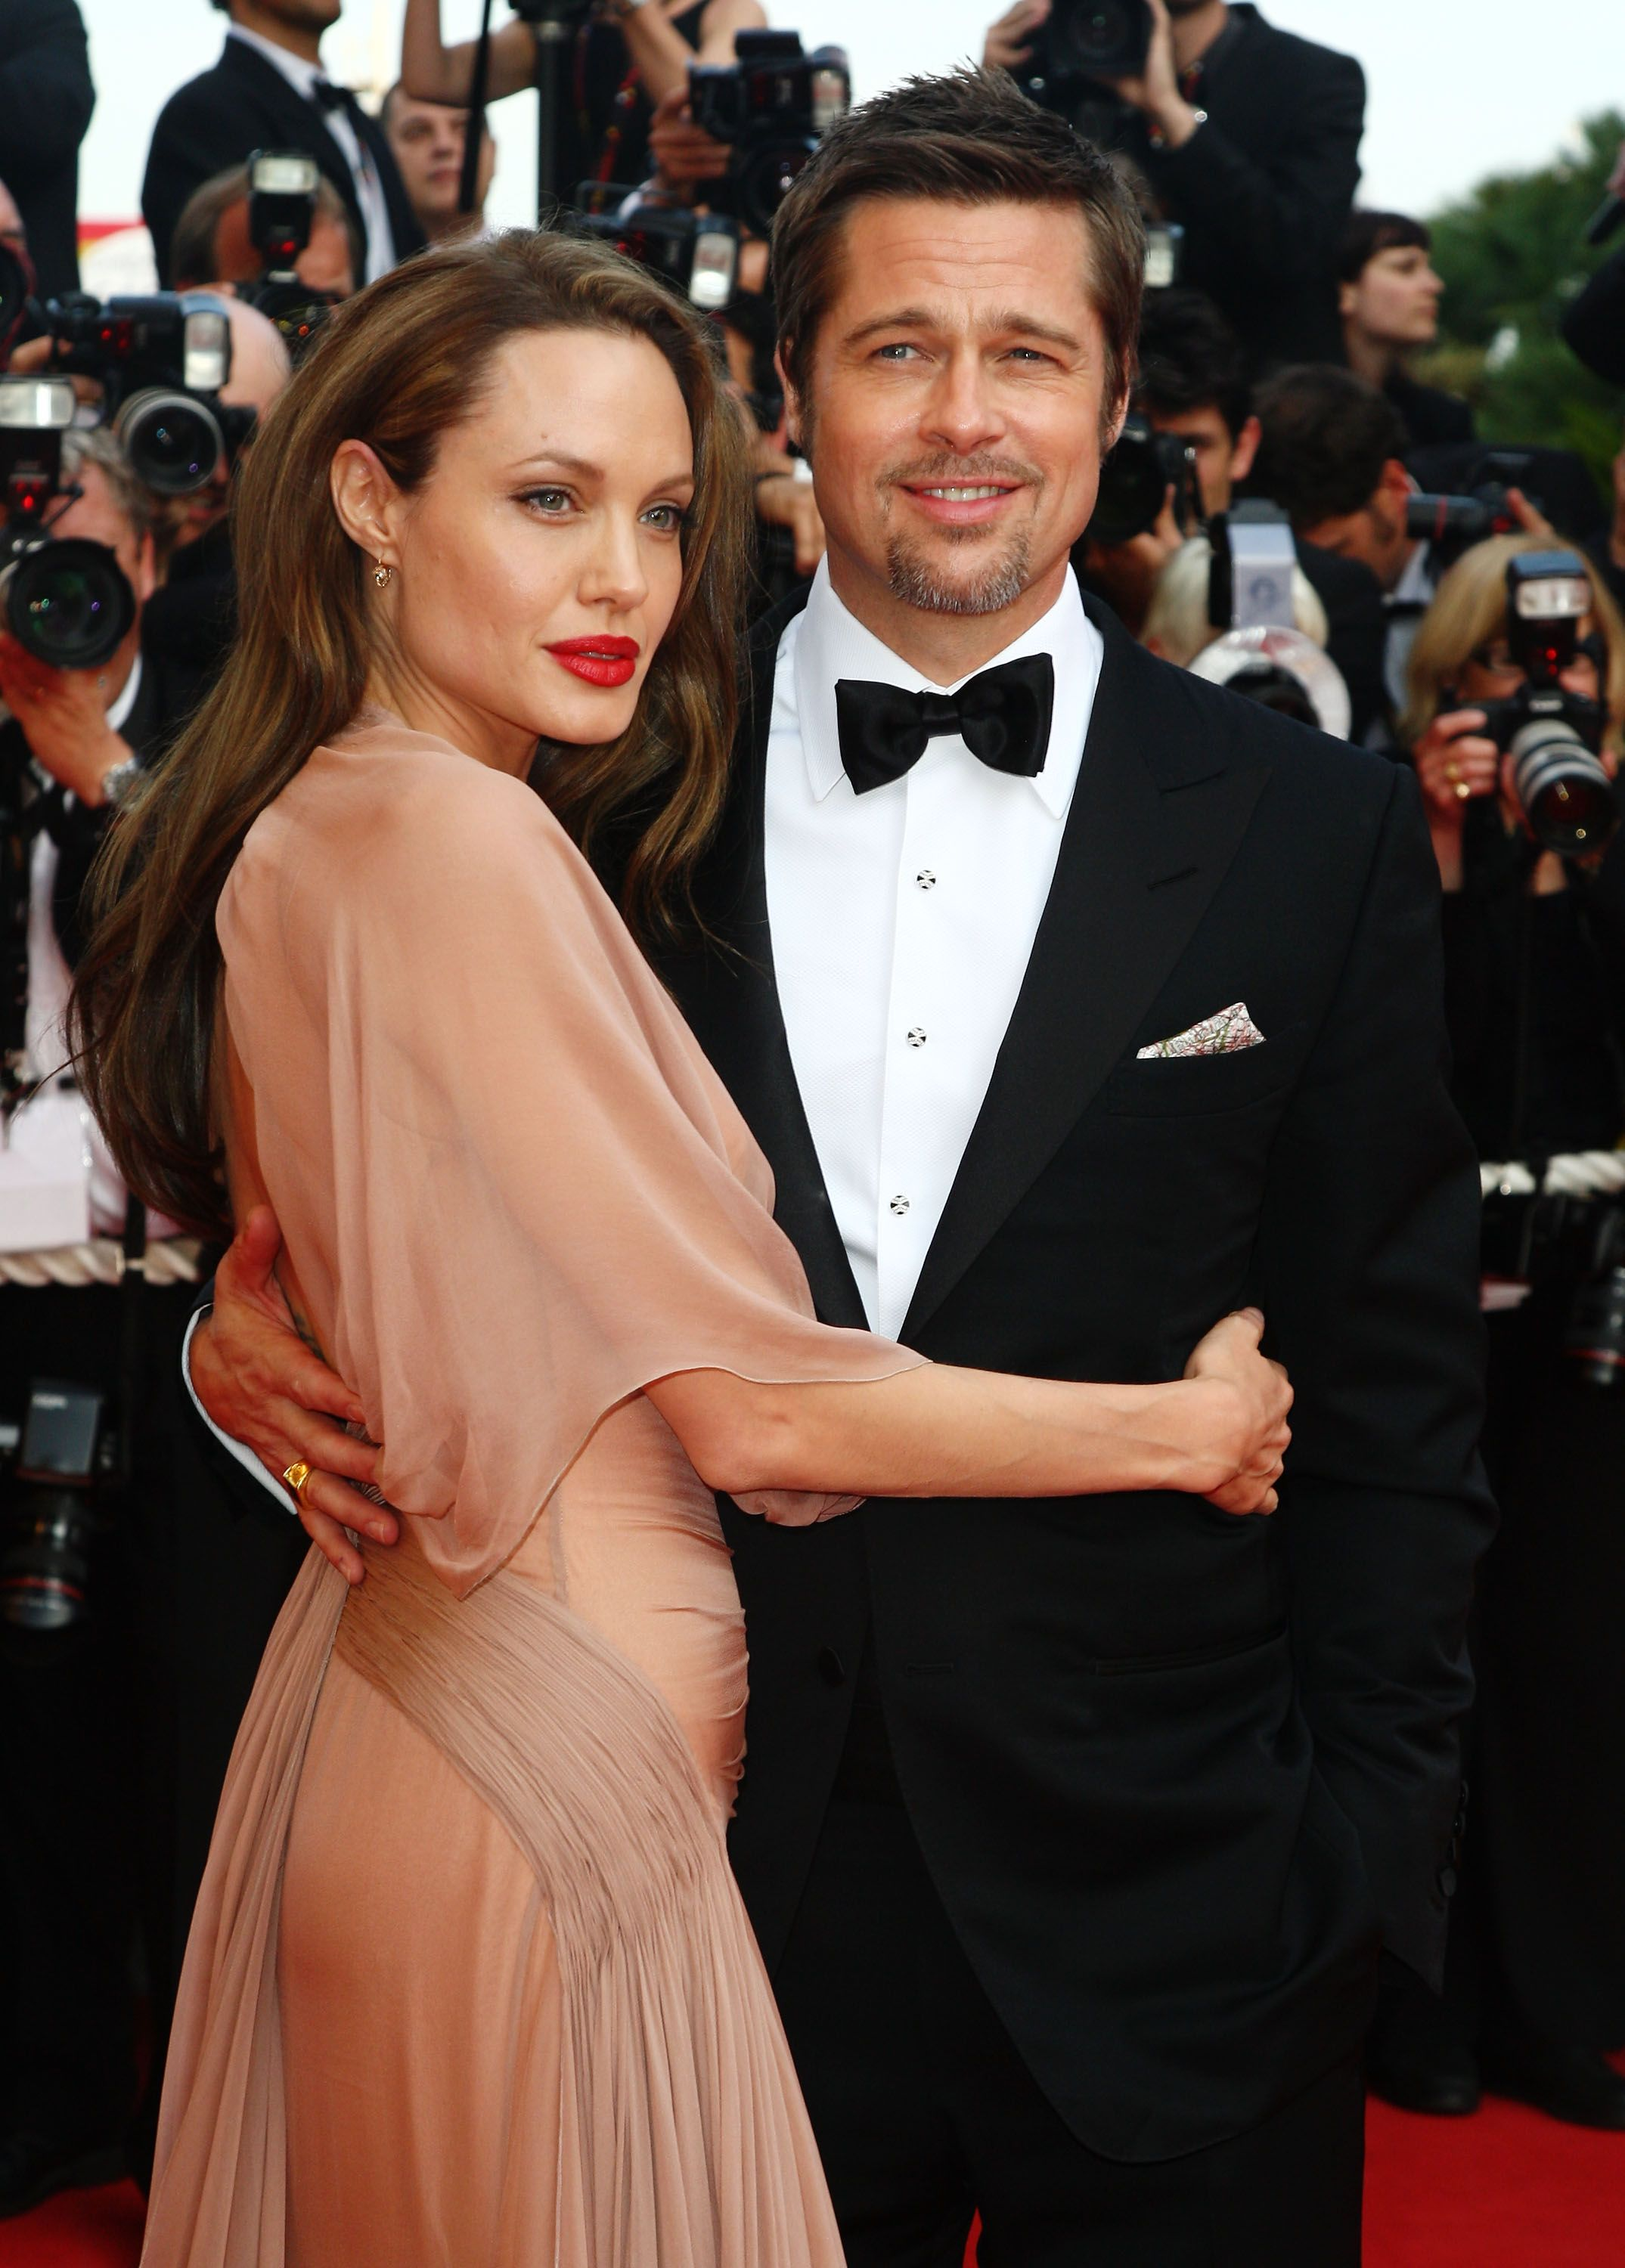 What Brad Pitt and Angelina Jolie's Relationship Is Like Now That They're Officially Single